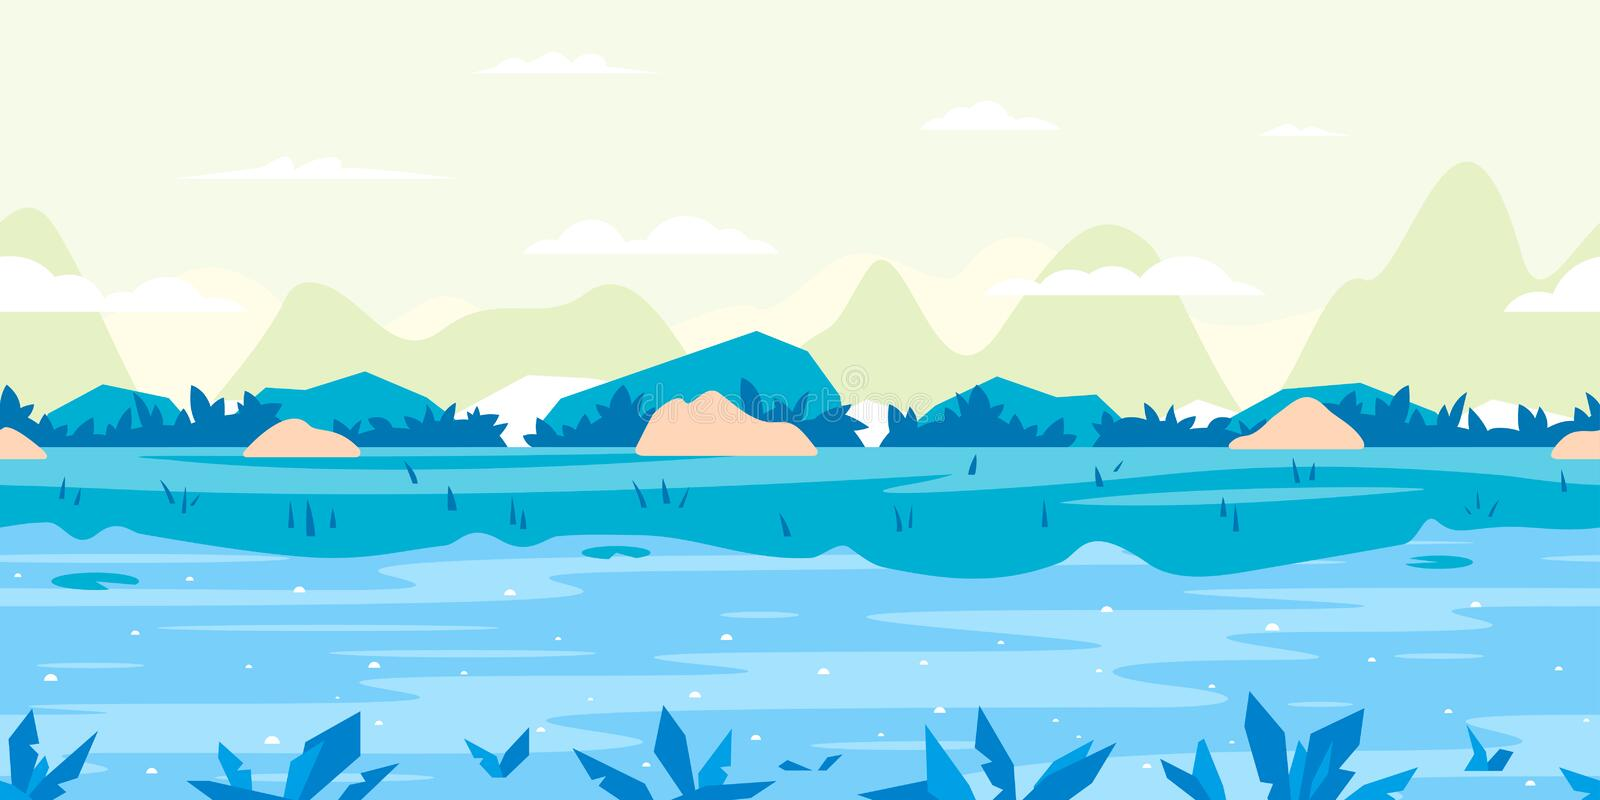 River Flow Game Background Flat Landscape vector illustration